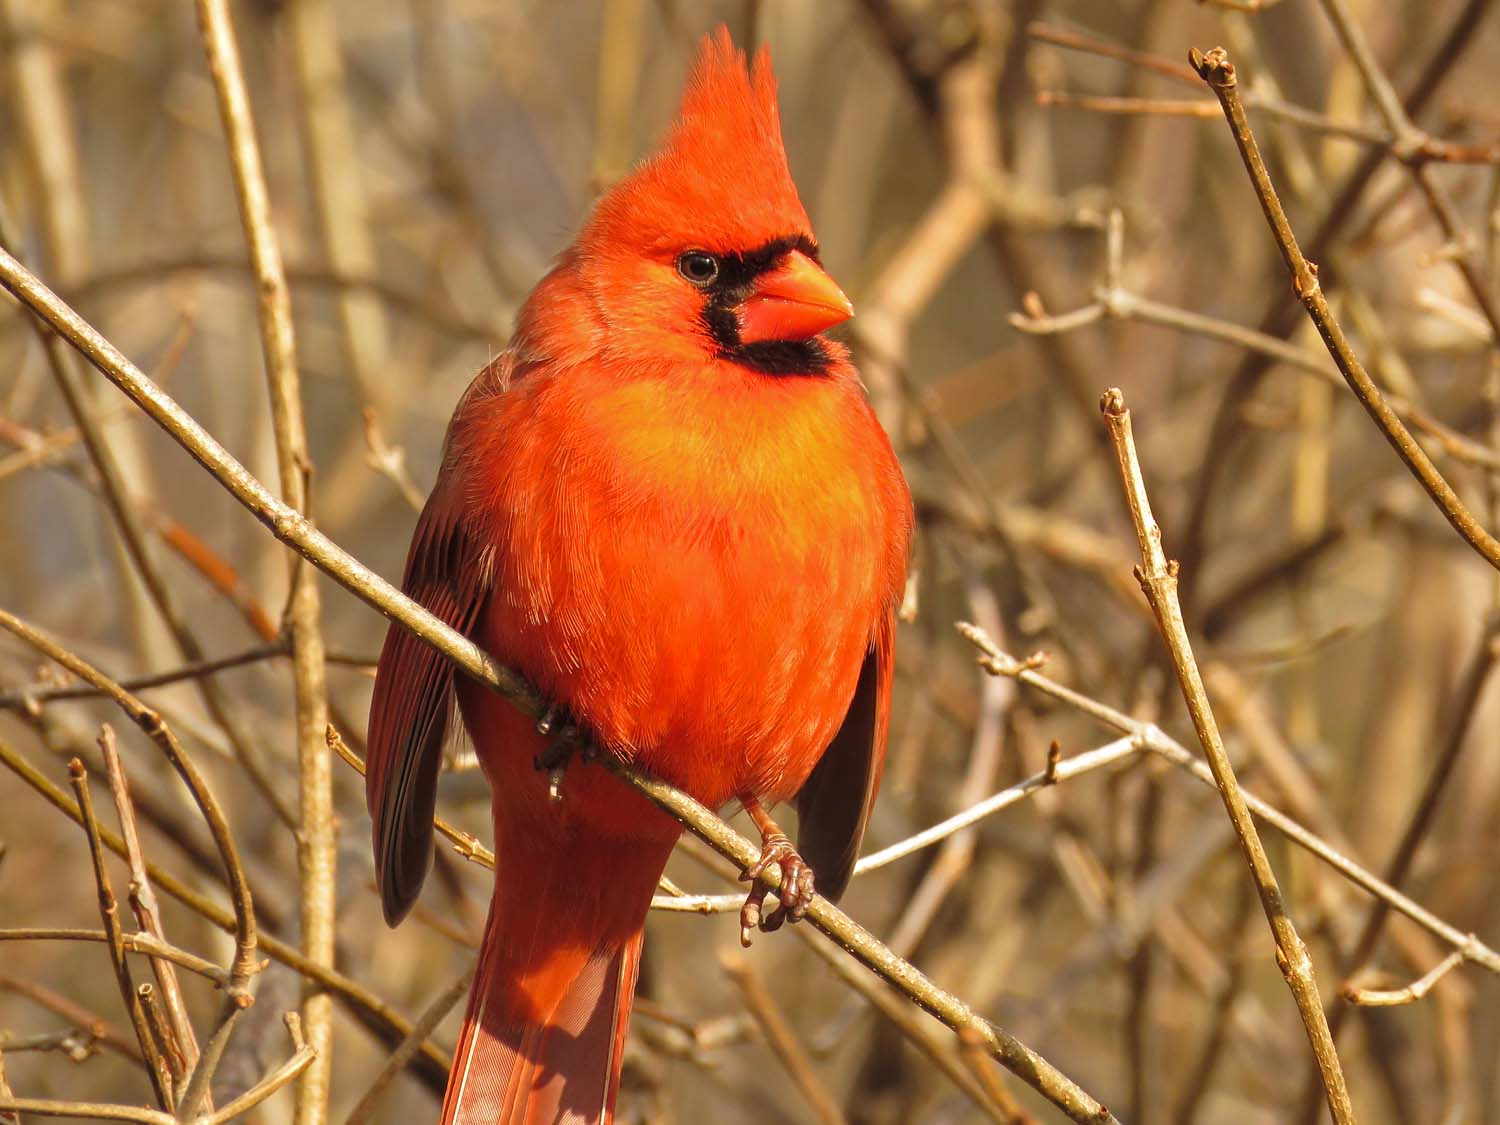 Northern cardinal, the Ramble, Central Park, March 13, 2018